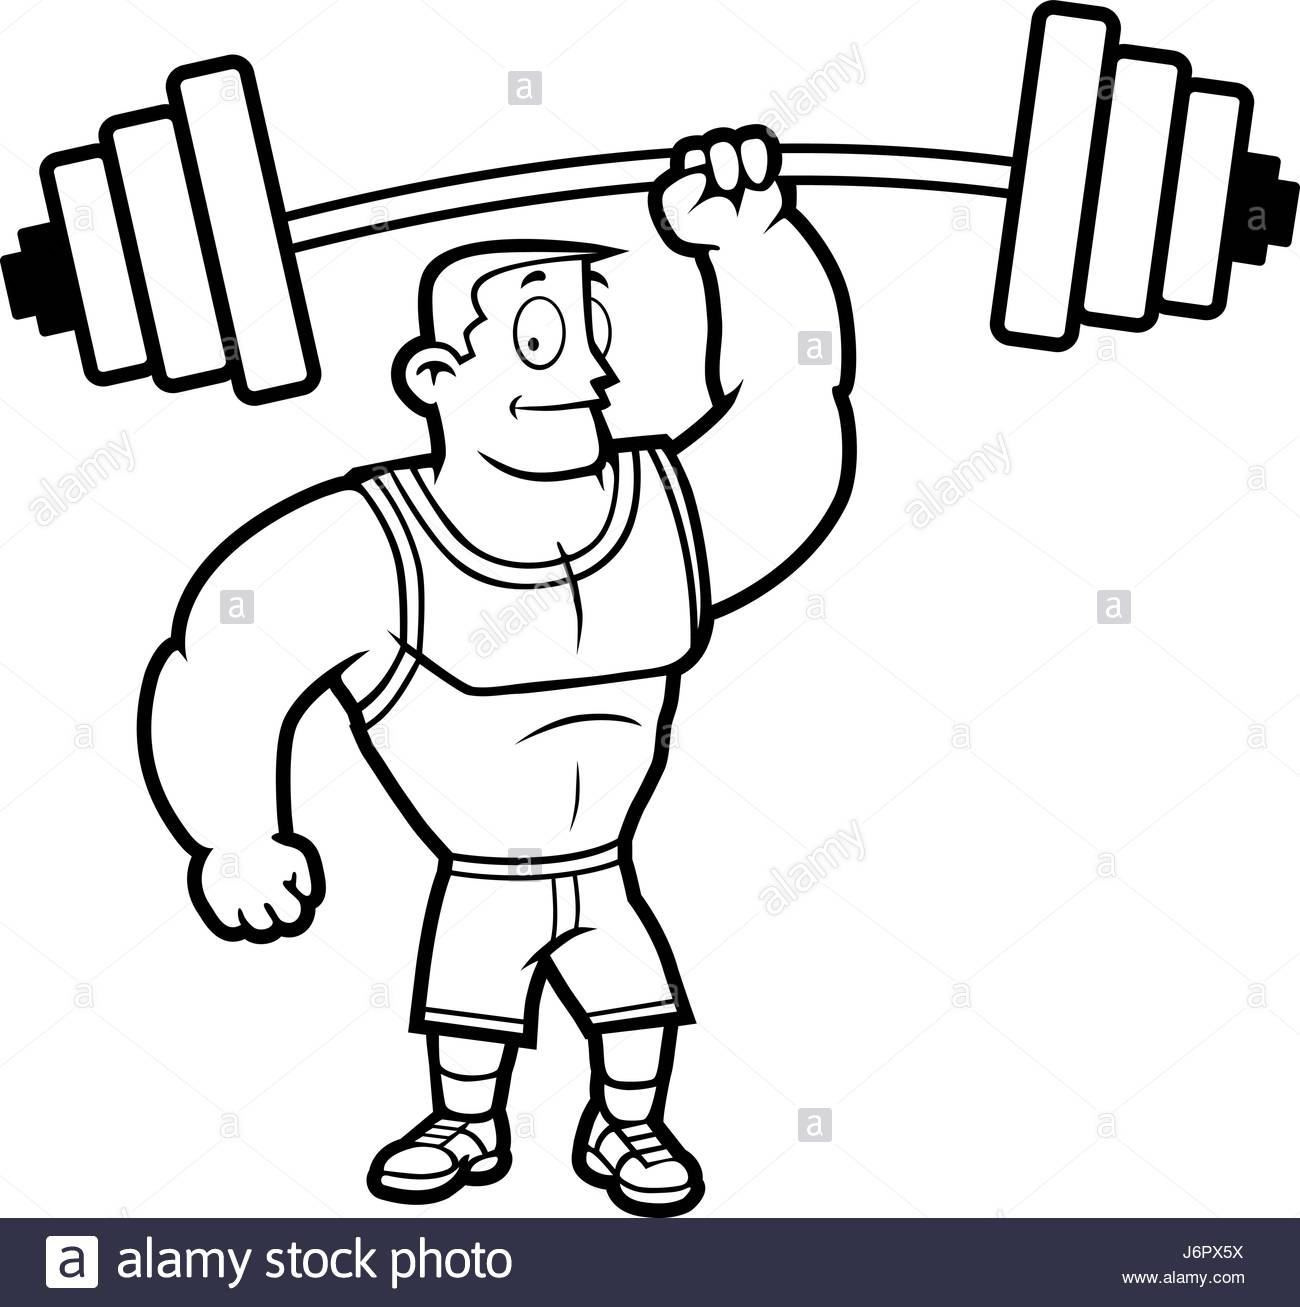 1300x1307 A Cartoon Strong Man Lifting A Heavy Weight Stock Vector Art